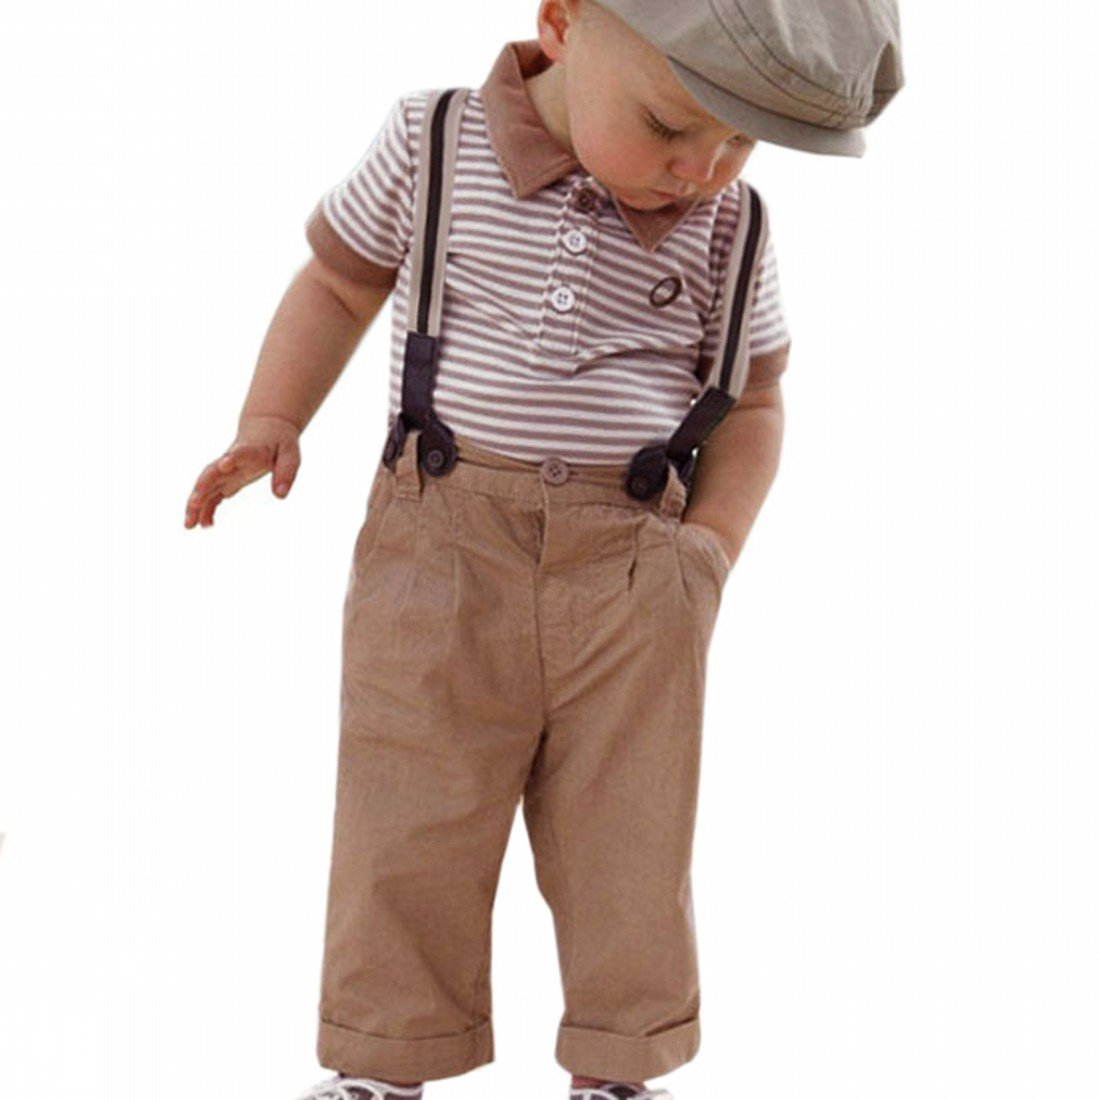 Yoyorule Boy Baby Striped Polo T-Shirt Top Bib + Pants Set Overalls Outfit Yoyorule 11